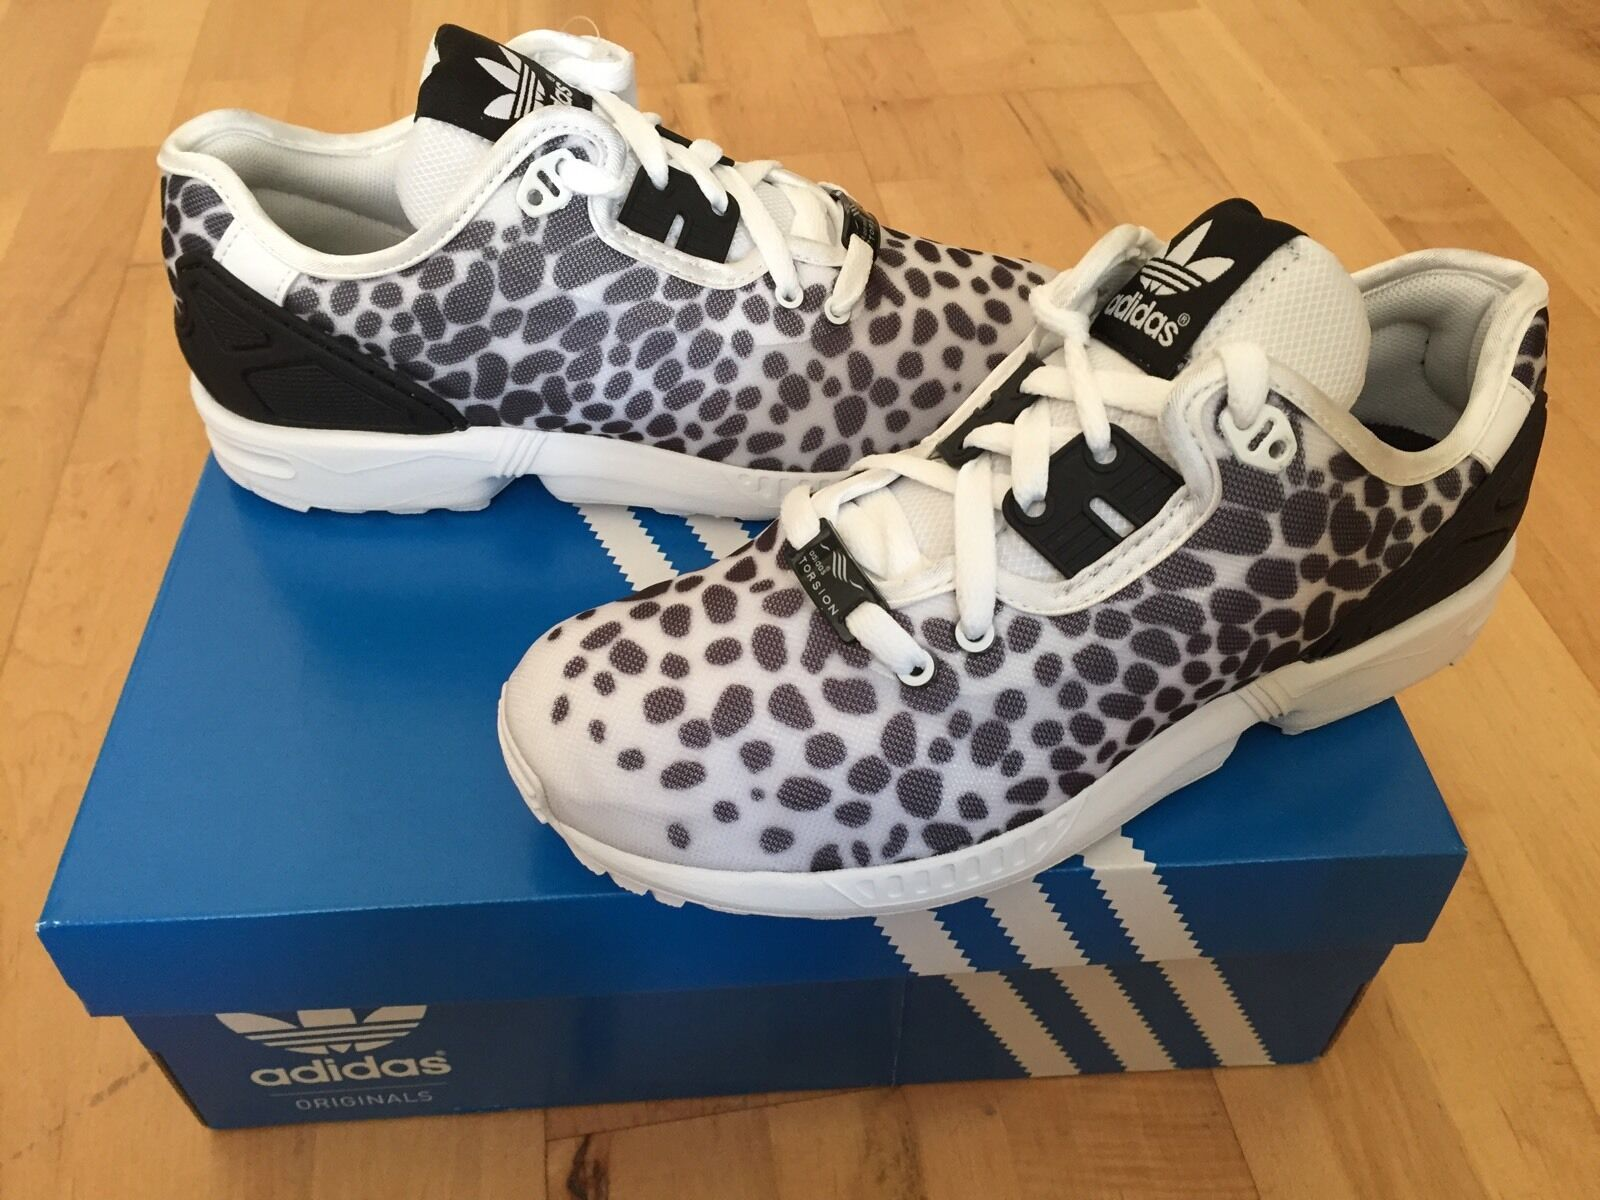 ADIDAS ZX Flux Decon Size Womens Trainers, White - Size Decon 5 578572